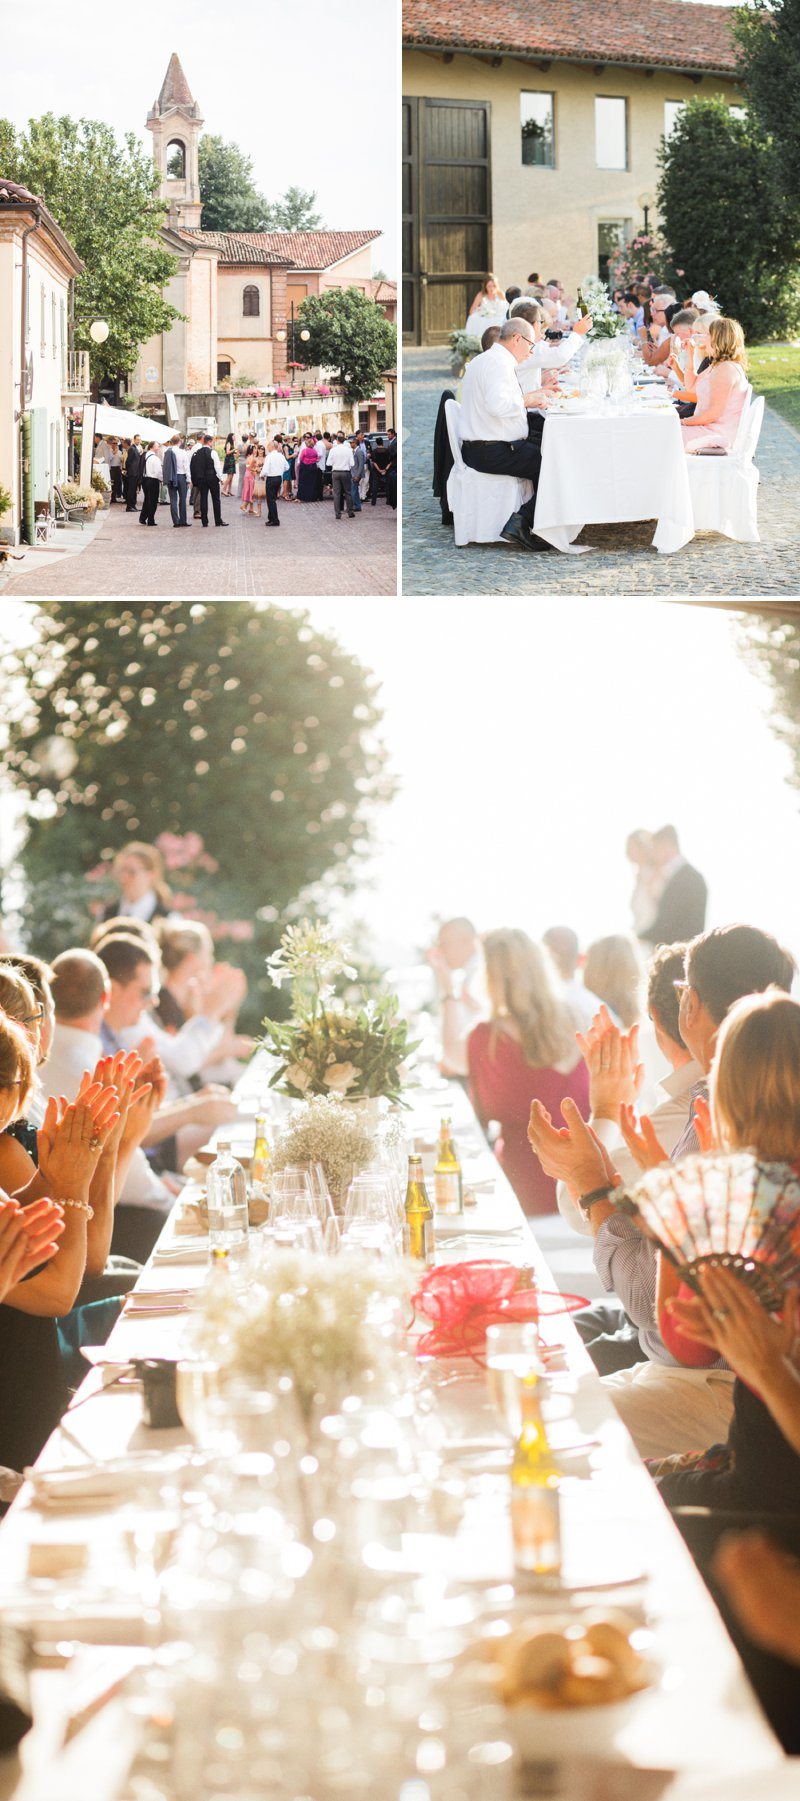 Elegant Wedding In Italy At The Locanda del Pilone Hotel And Restaurant With Bride In Julianne By Jenny Packham And Groom In Tom Ford Suit With A Five Course Italian Banquet 8